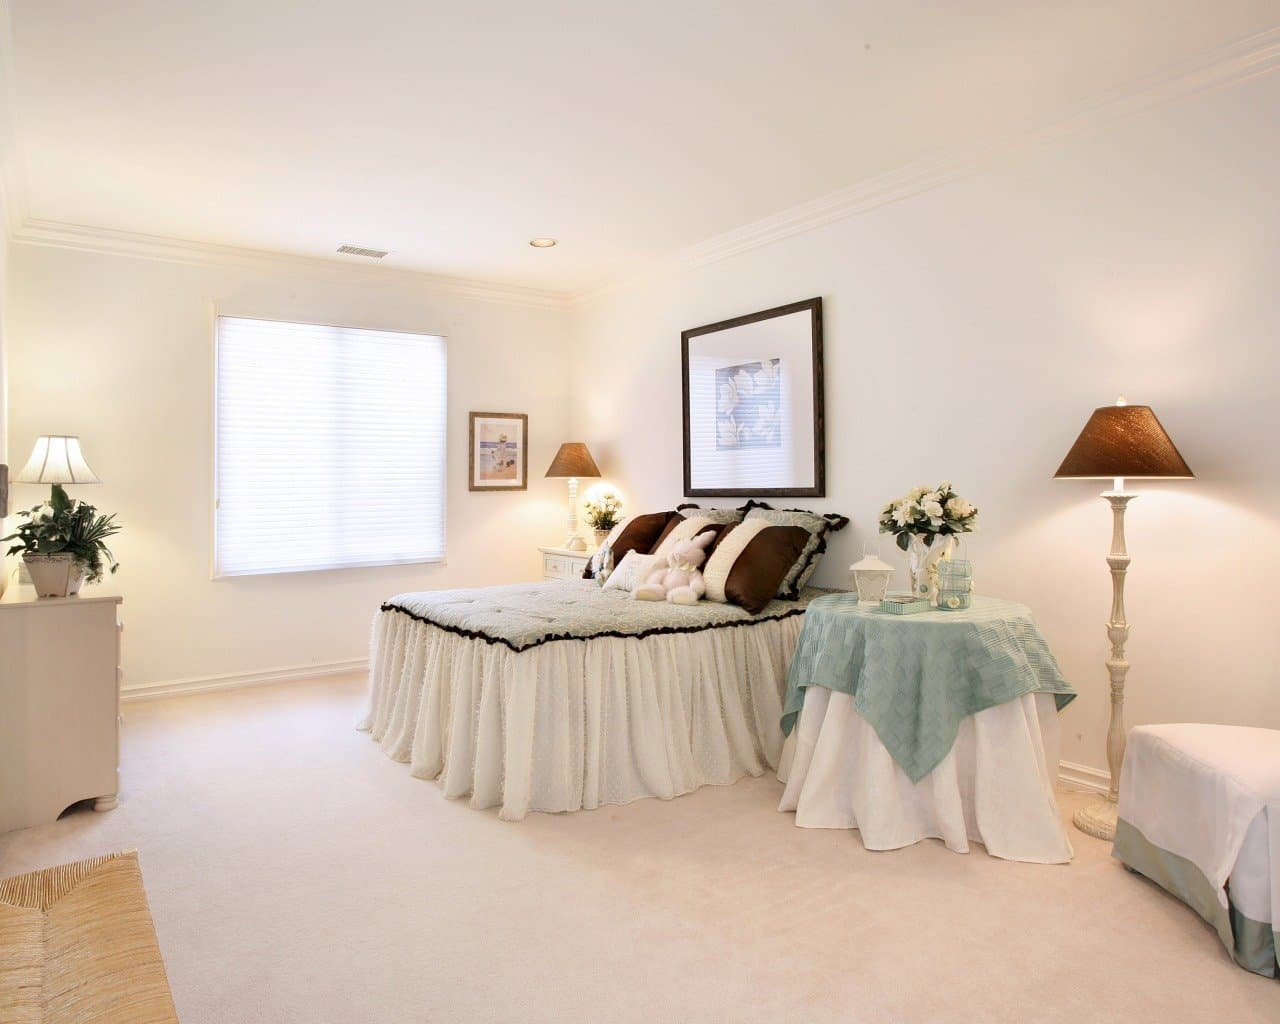 White boxed bedroom with black framed picture at the headboard